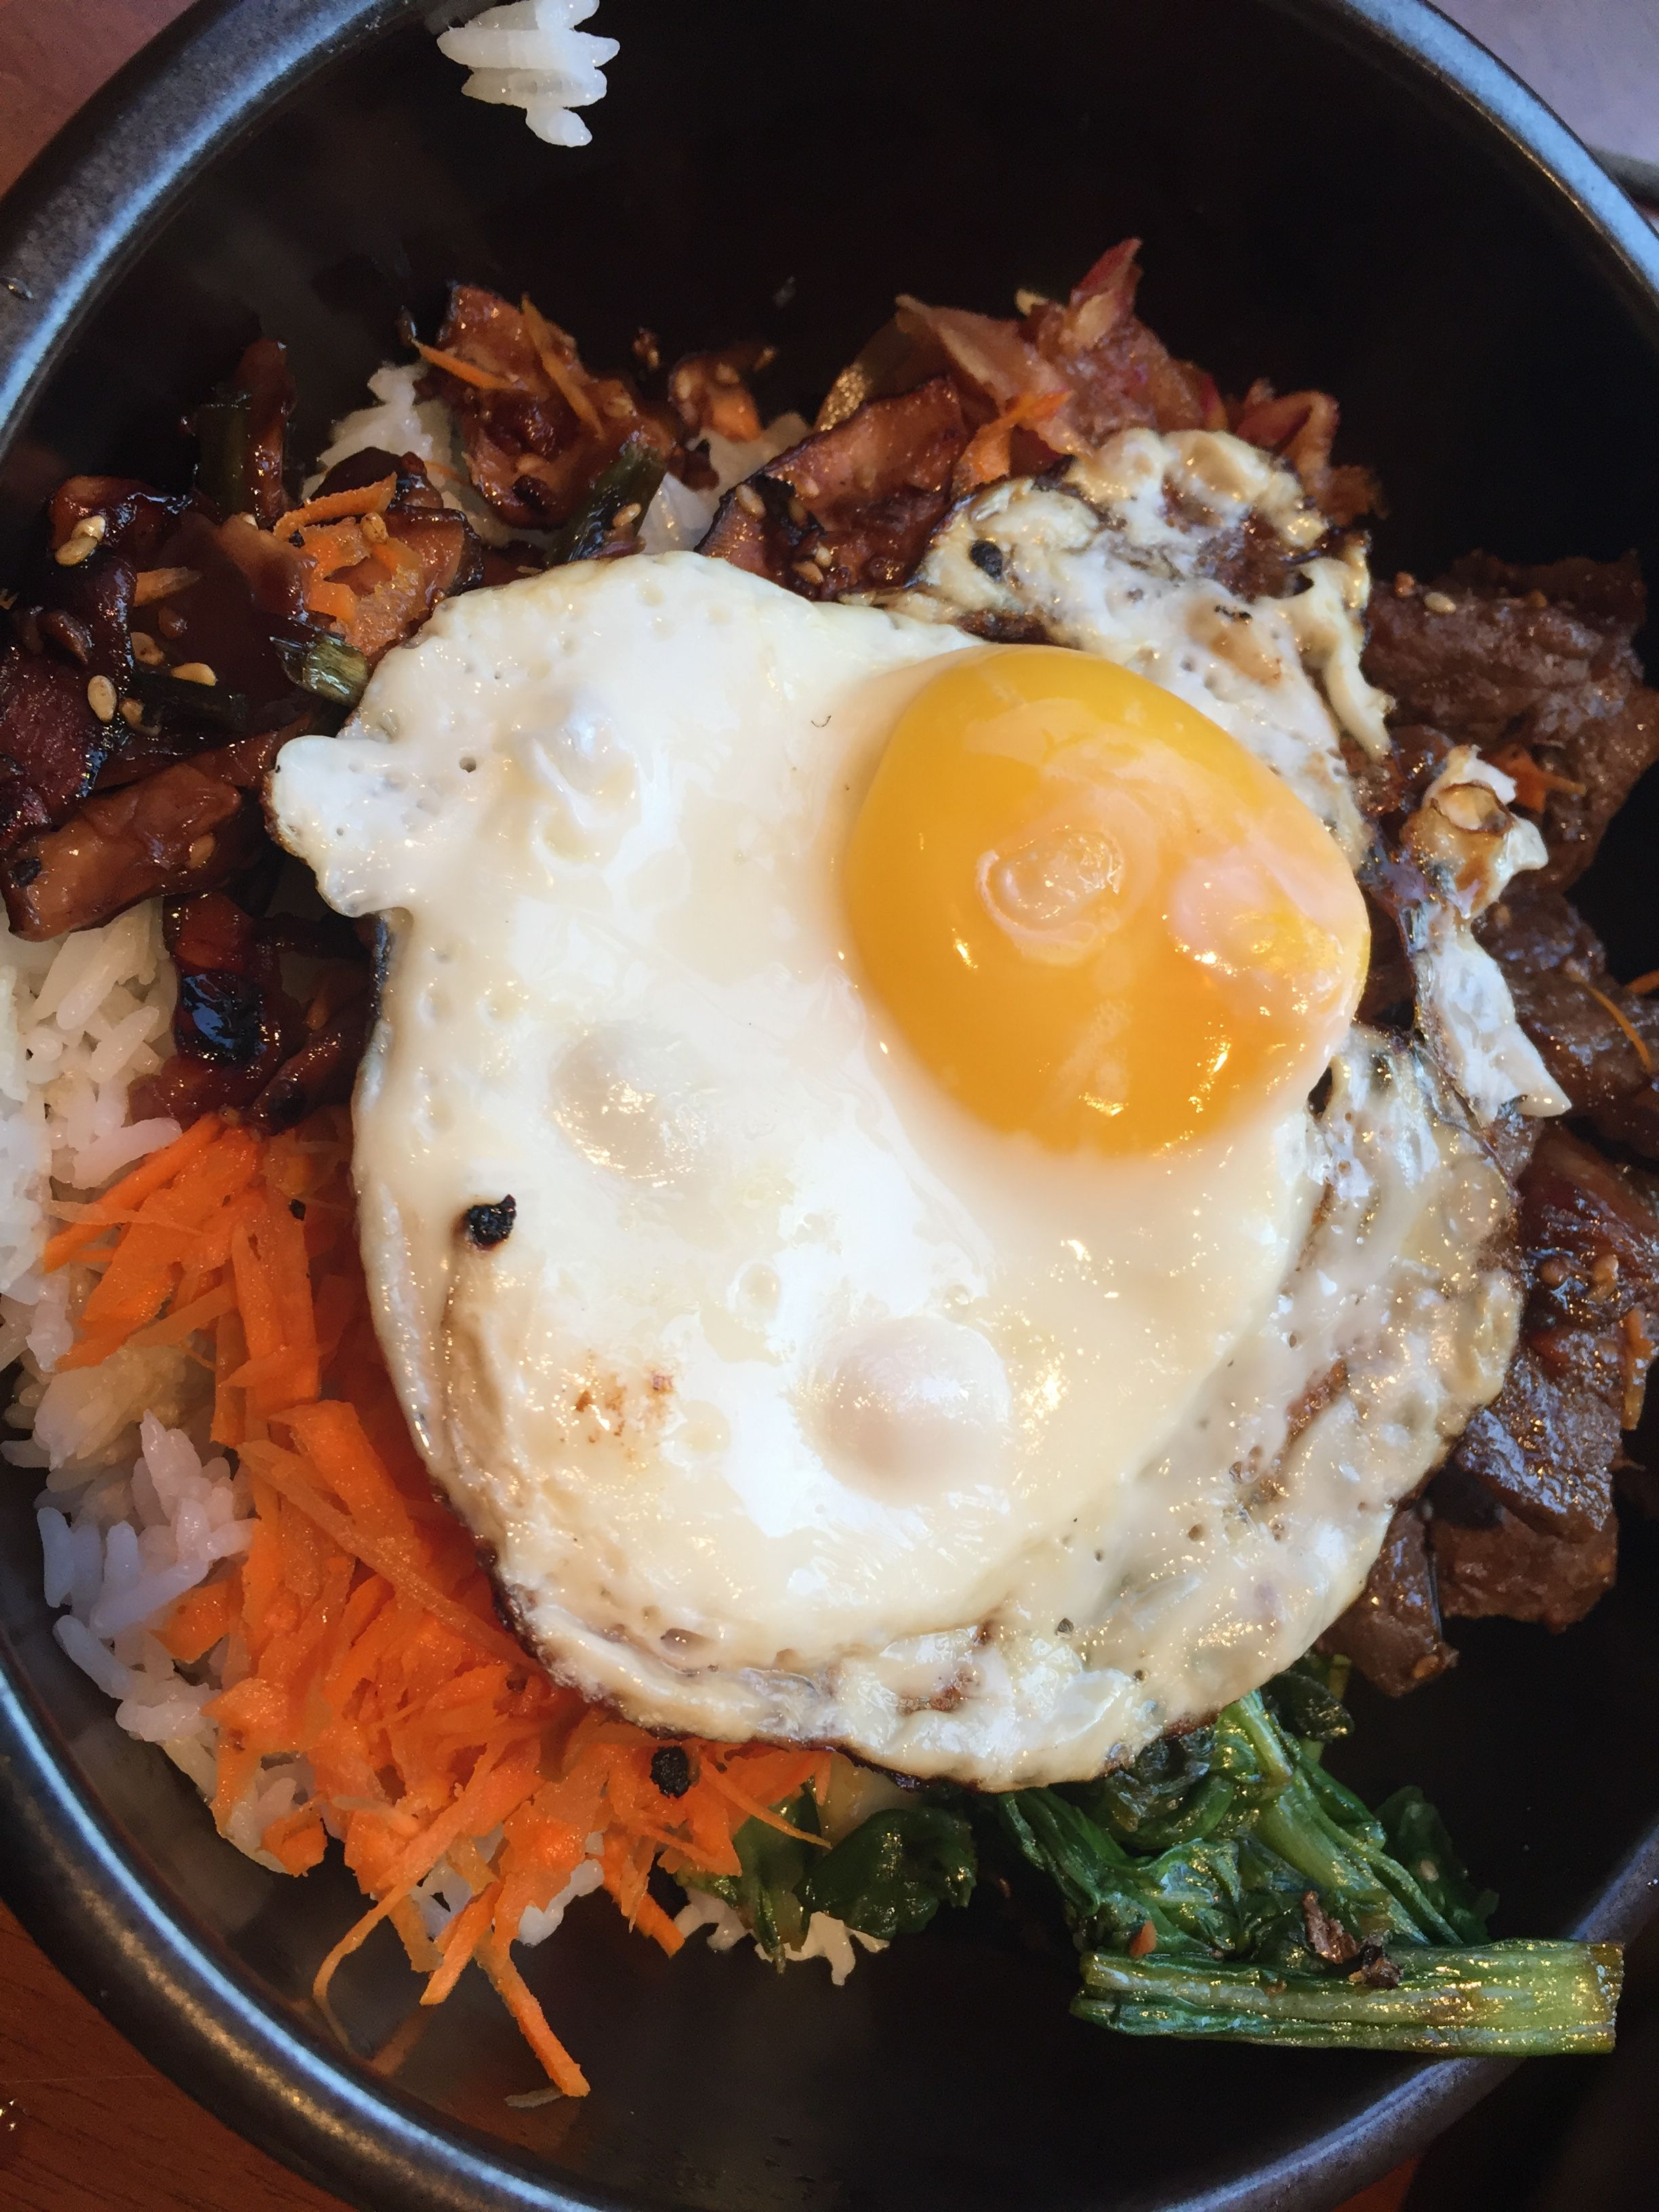 I've actually combined the veggies and egg from this with the Skinnytaste Korean Beef Bowl to make an easy dish that Sam, Dan, and I like. Haven't made the sauce from this recipe.